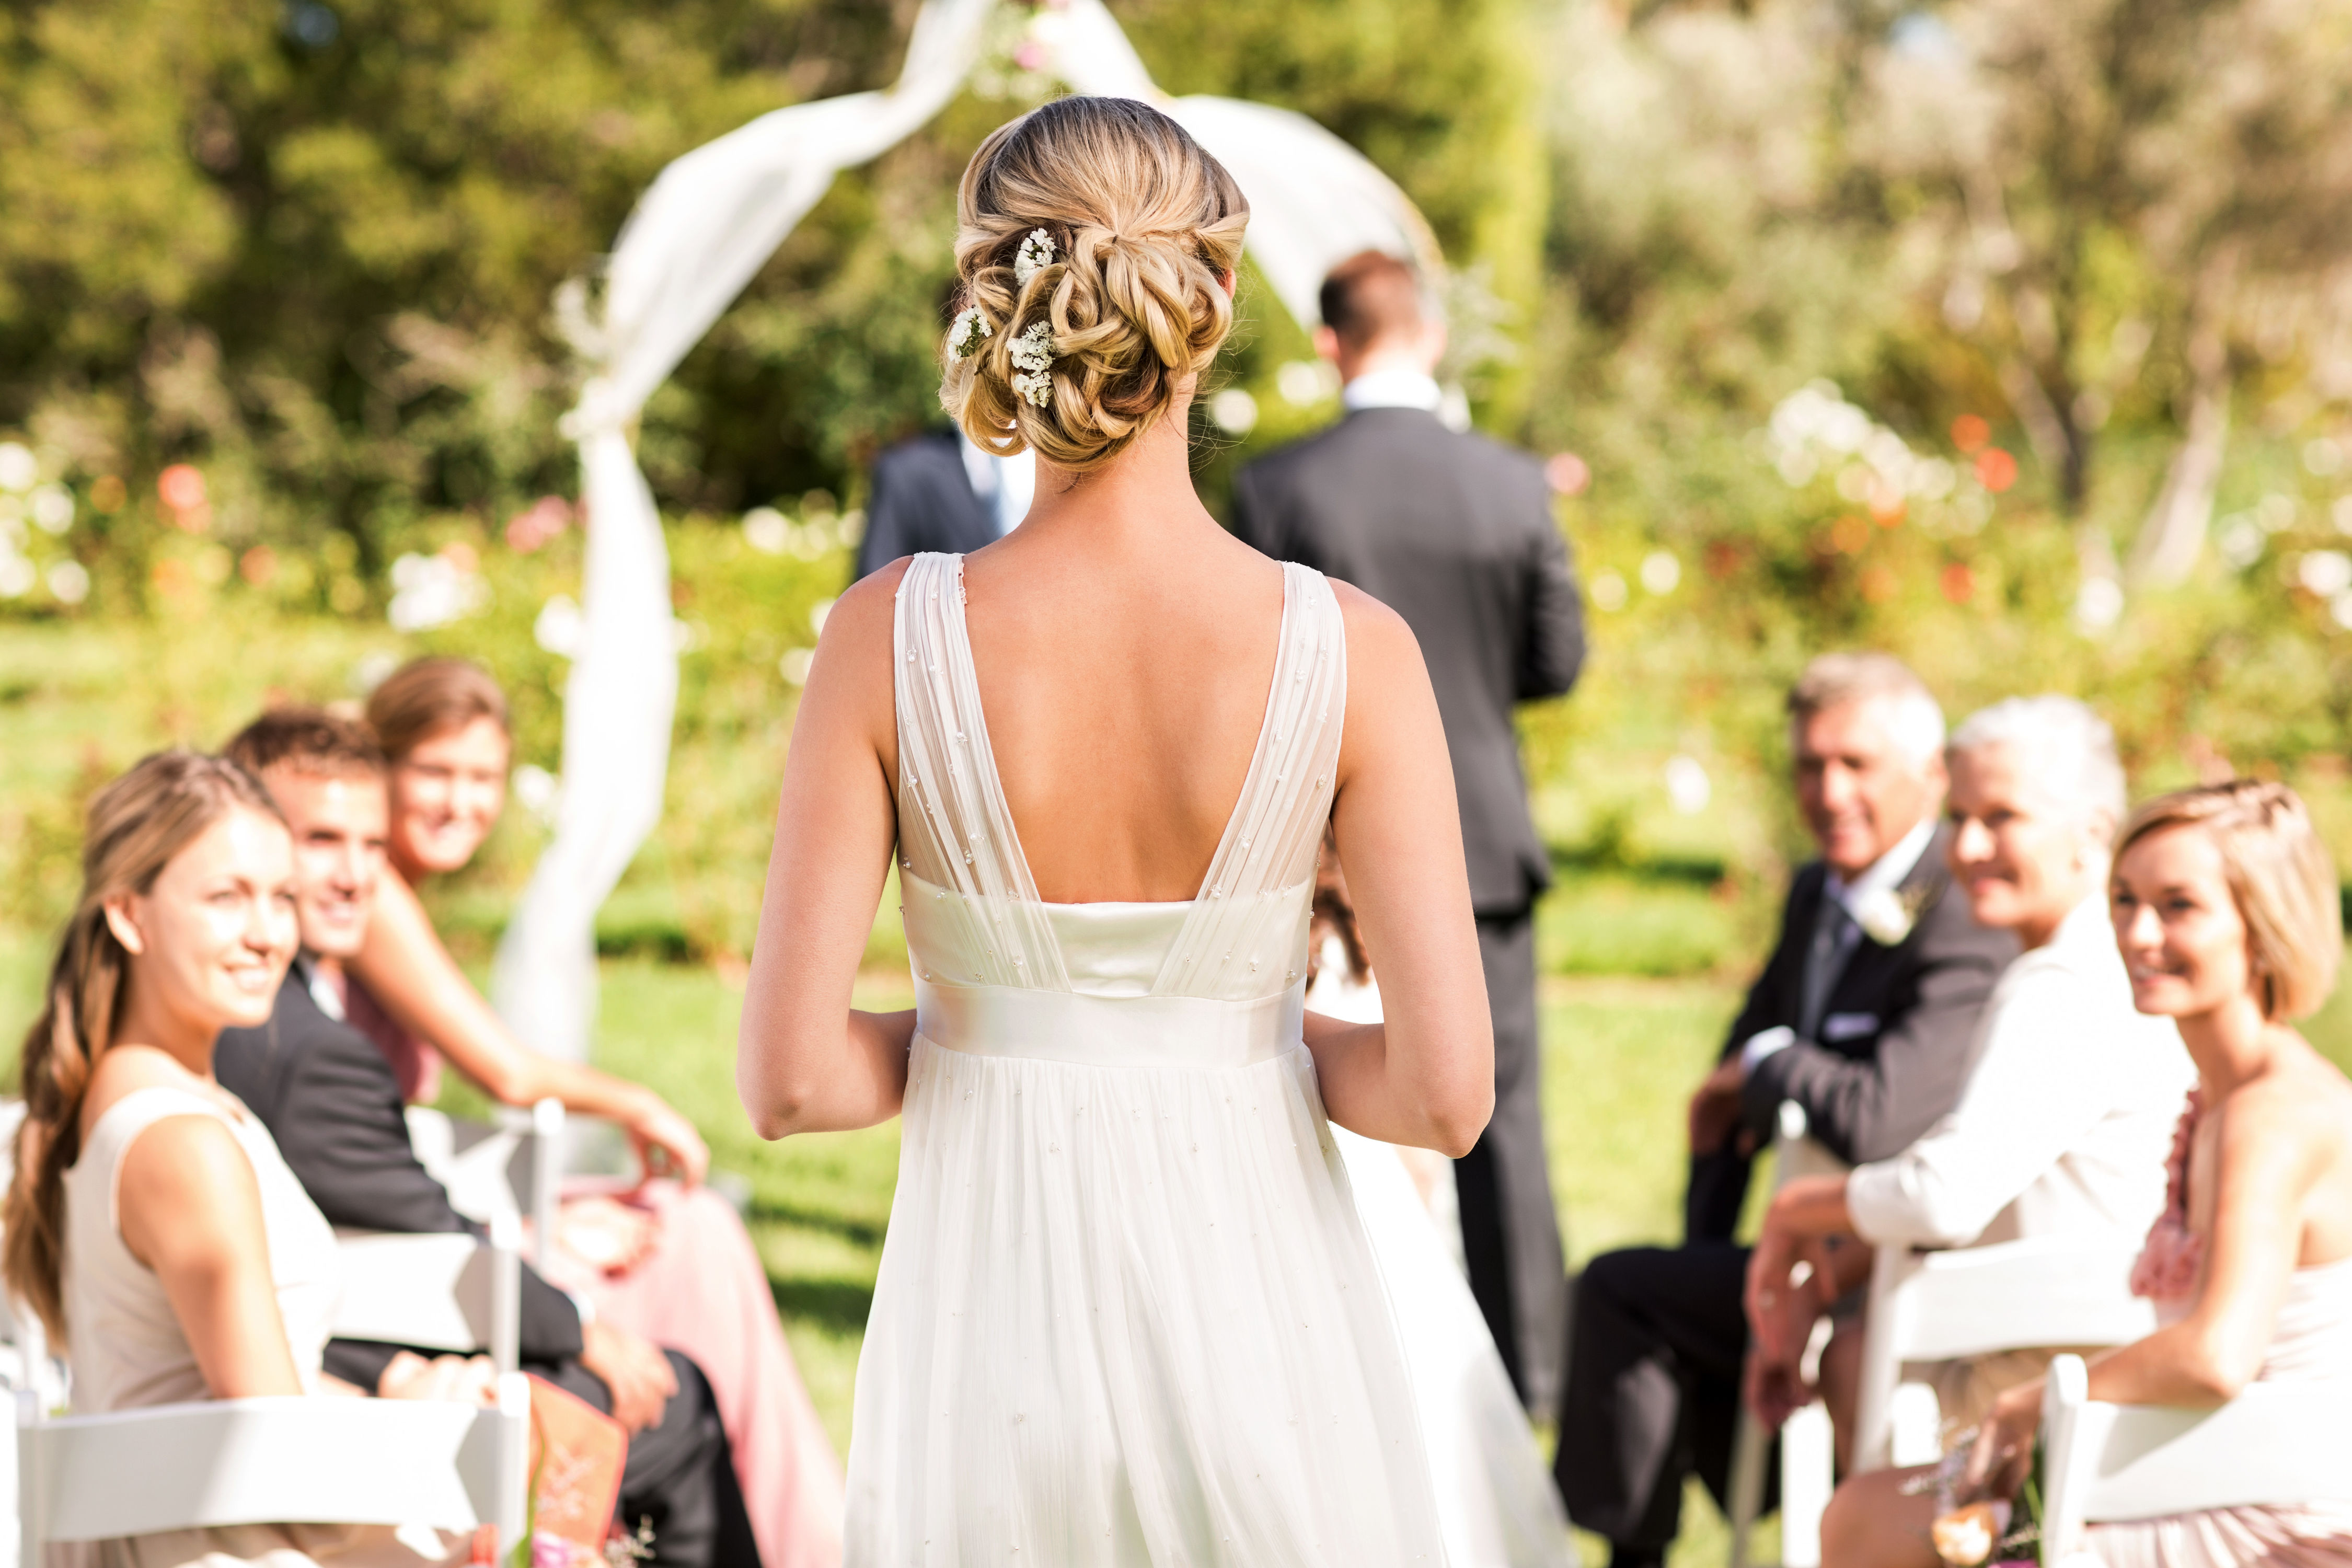 Wedding Photographer Pleads with Guests to Stop This Common Behavior